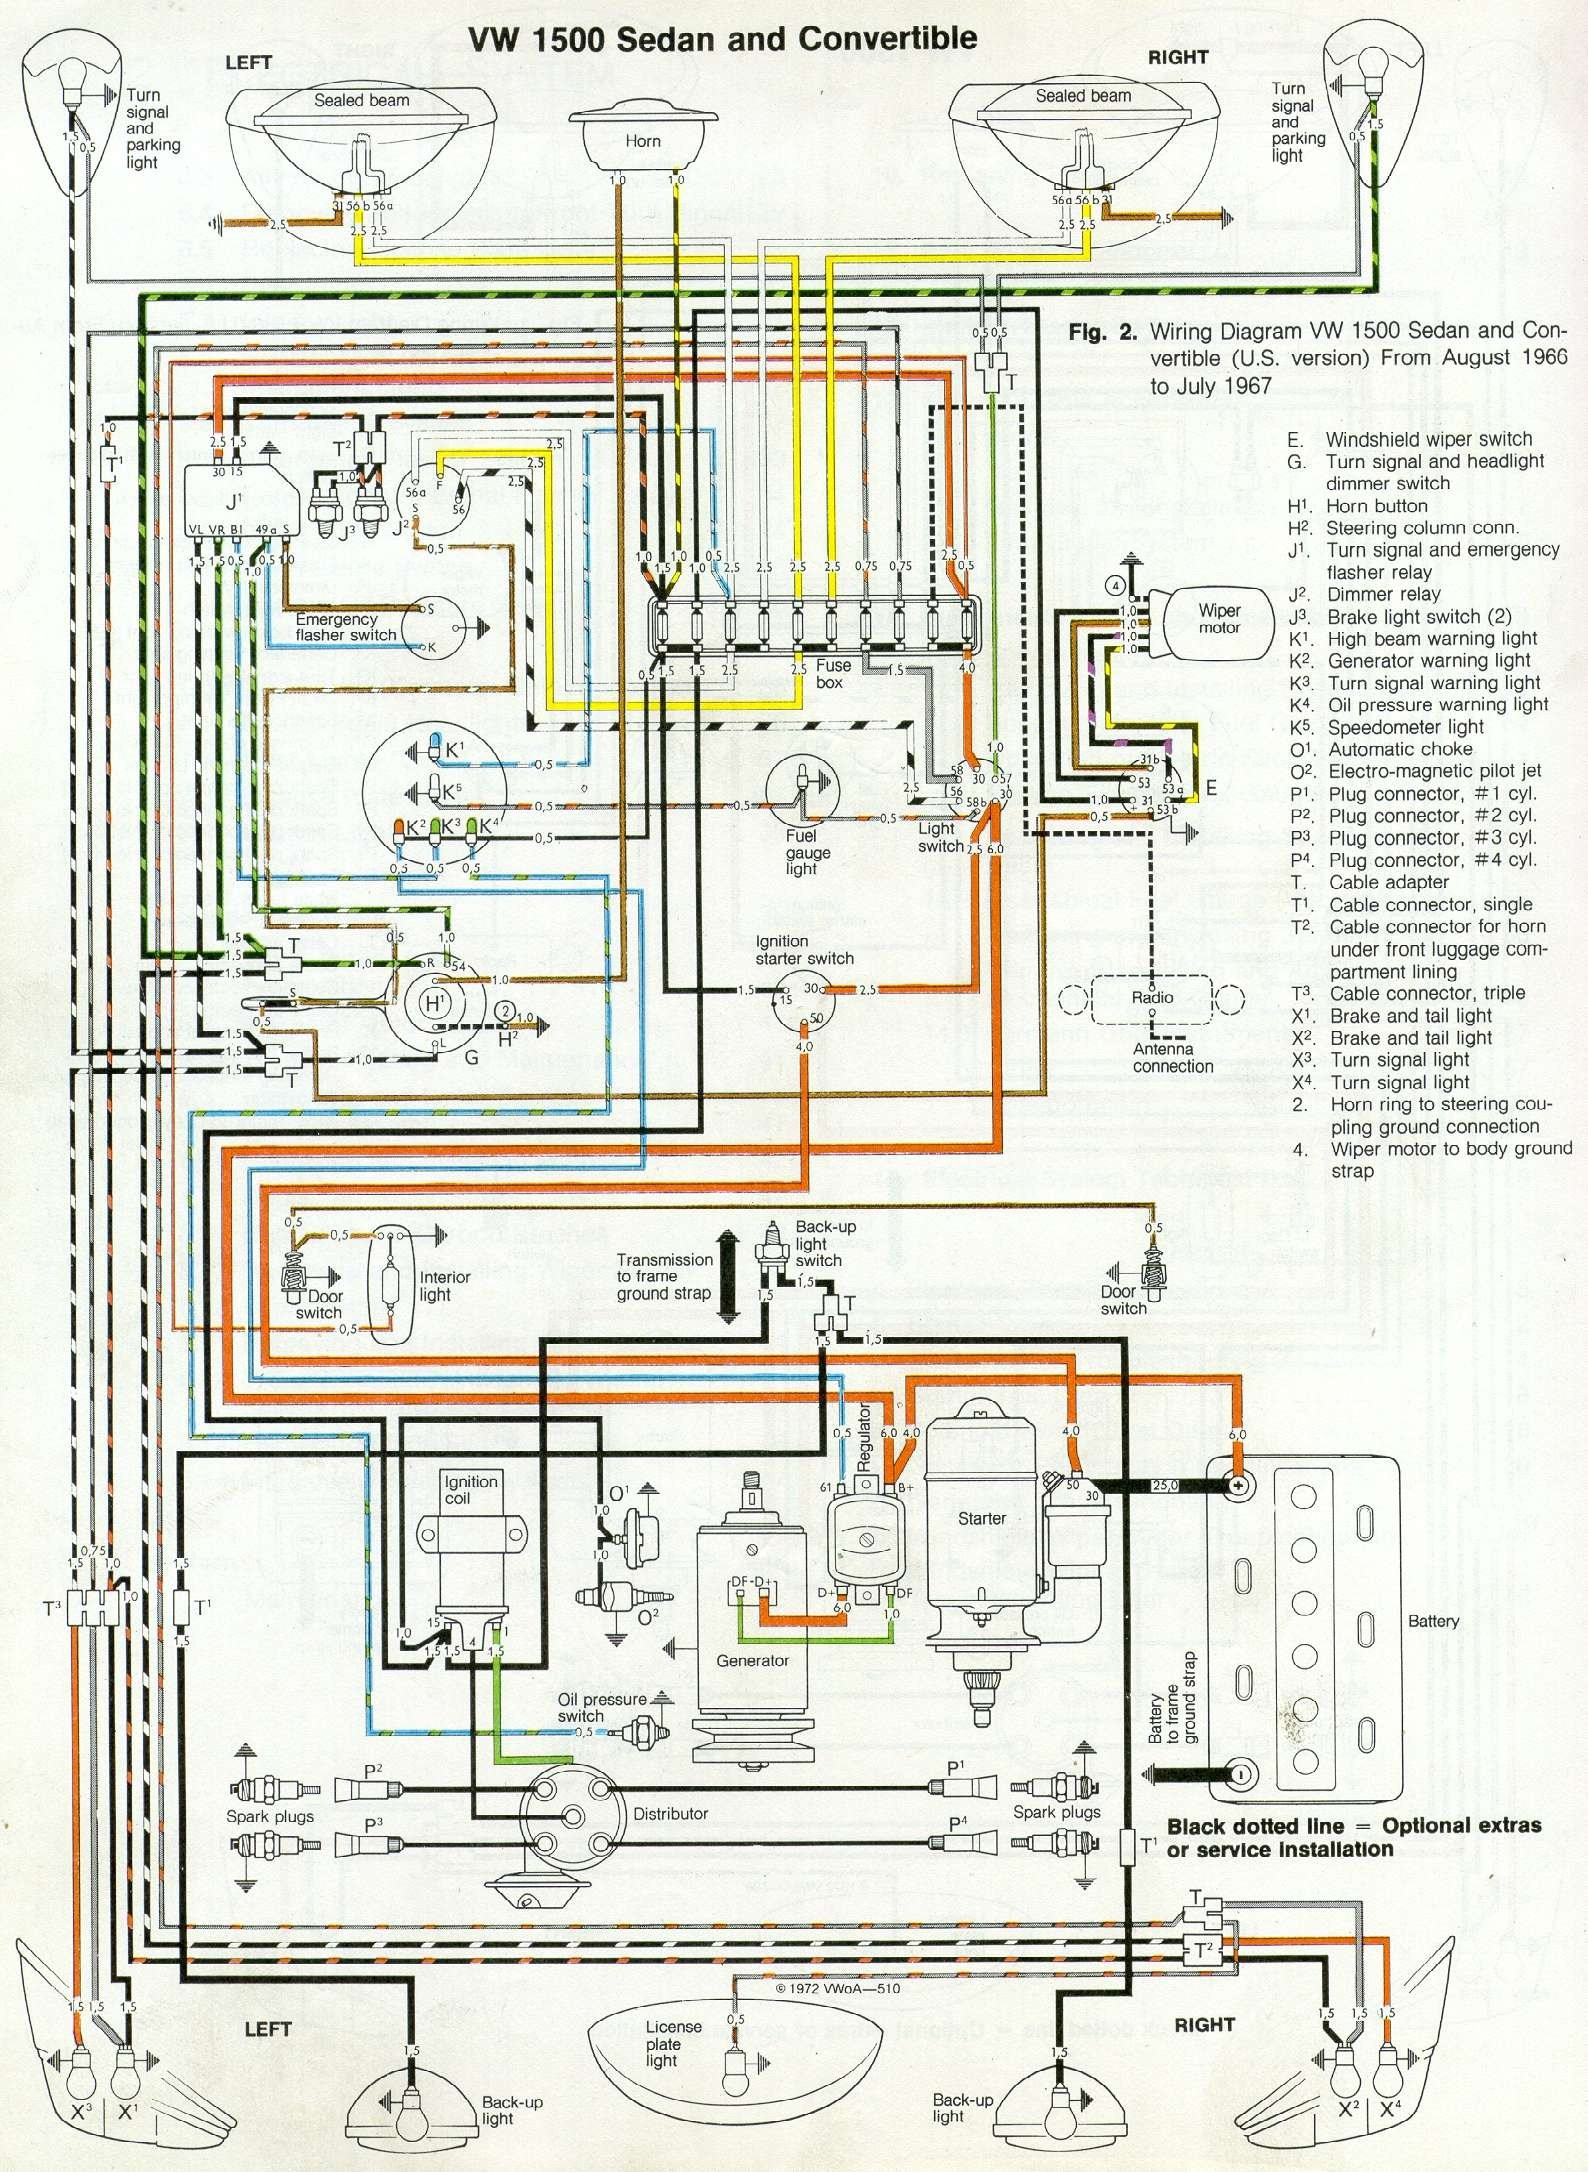 VW Beetle Wiring Digram 67 beetle wiring diagram u s version 1967 vw beetle vw golf 3 electrical wiring diagram at webbmarketing.co